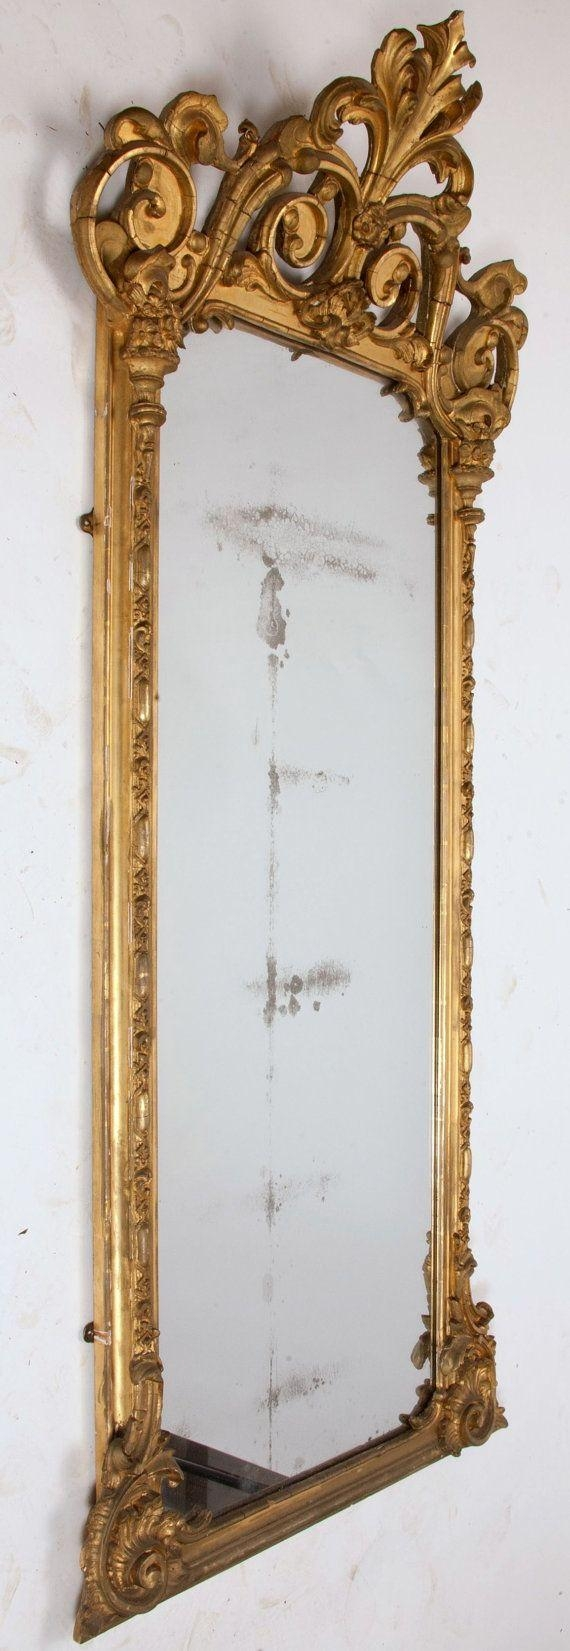 Best 25+ French Mirror Ideas On Pinterest | Antique Mirrors For French Wall Mirror (Image 5 of 20)